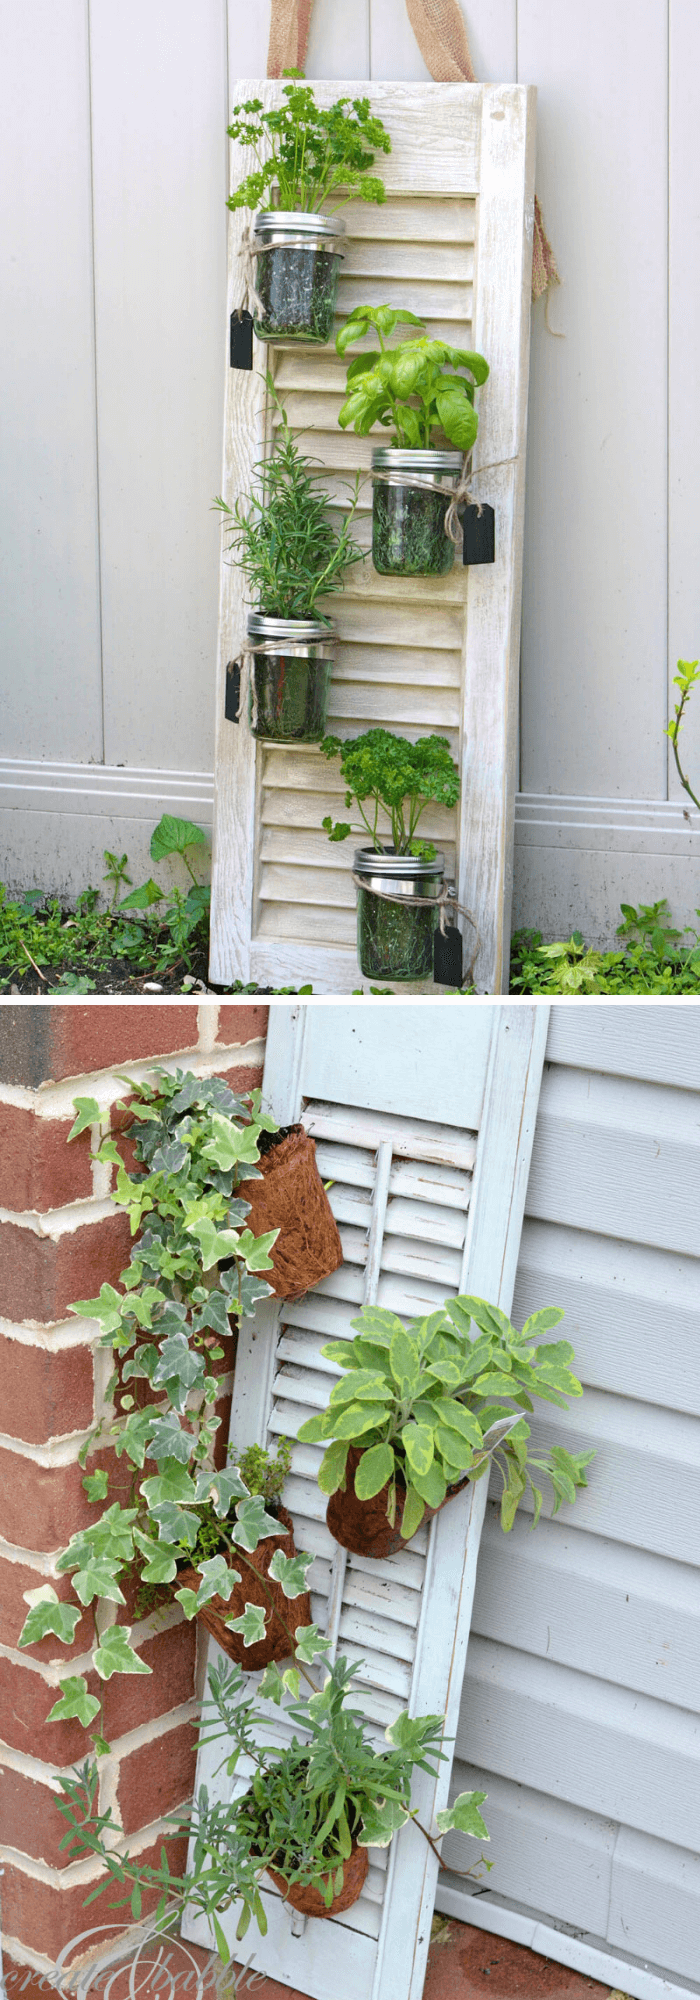 Old Shutter Outdoor Decor Ideas Shutter and Mason Jar Herb Garden